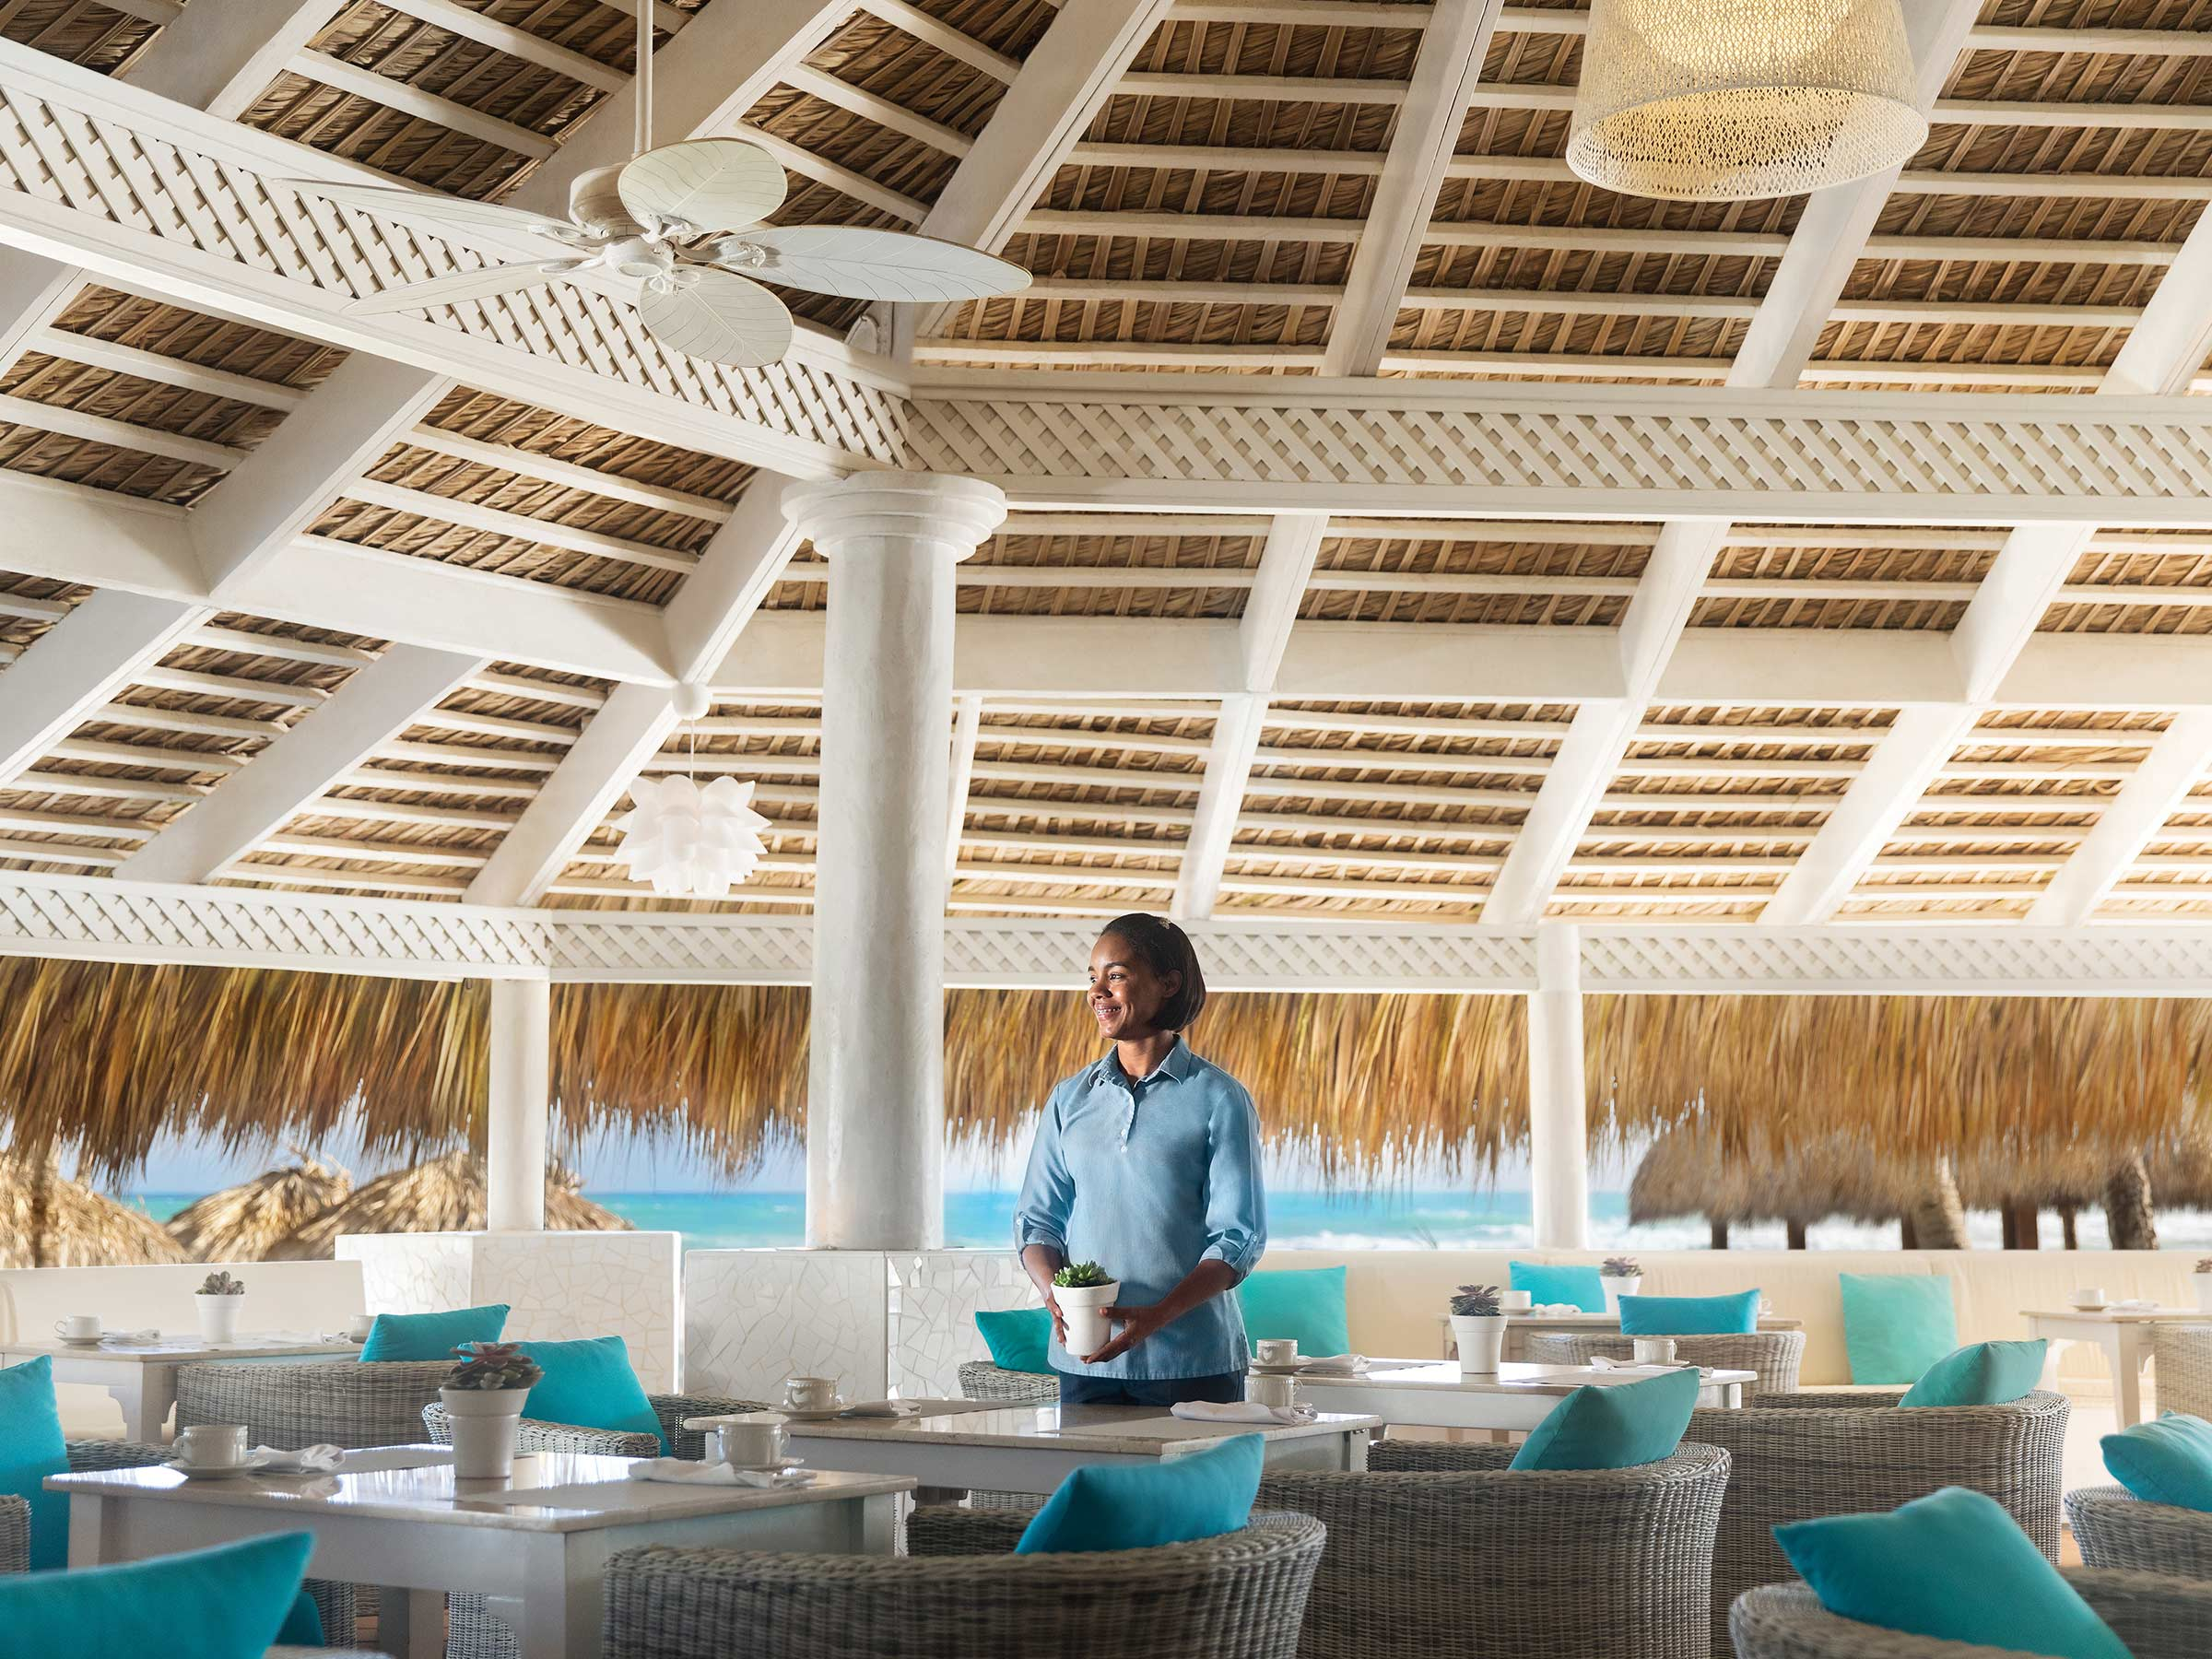 Savor an Exquisite Variety of Dishes at this Punta Cana Lobster Restaurant